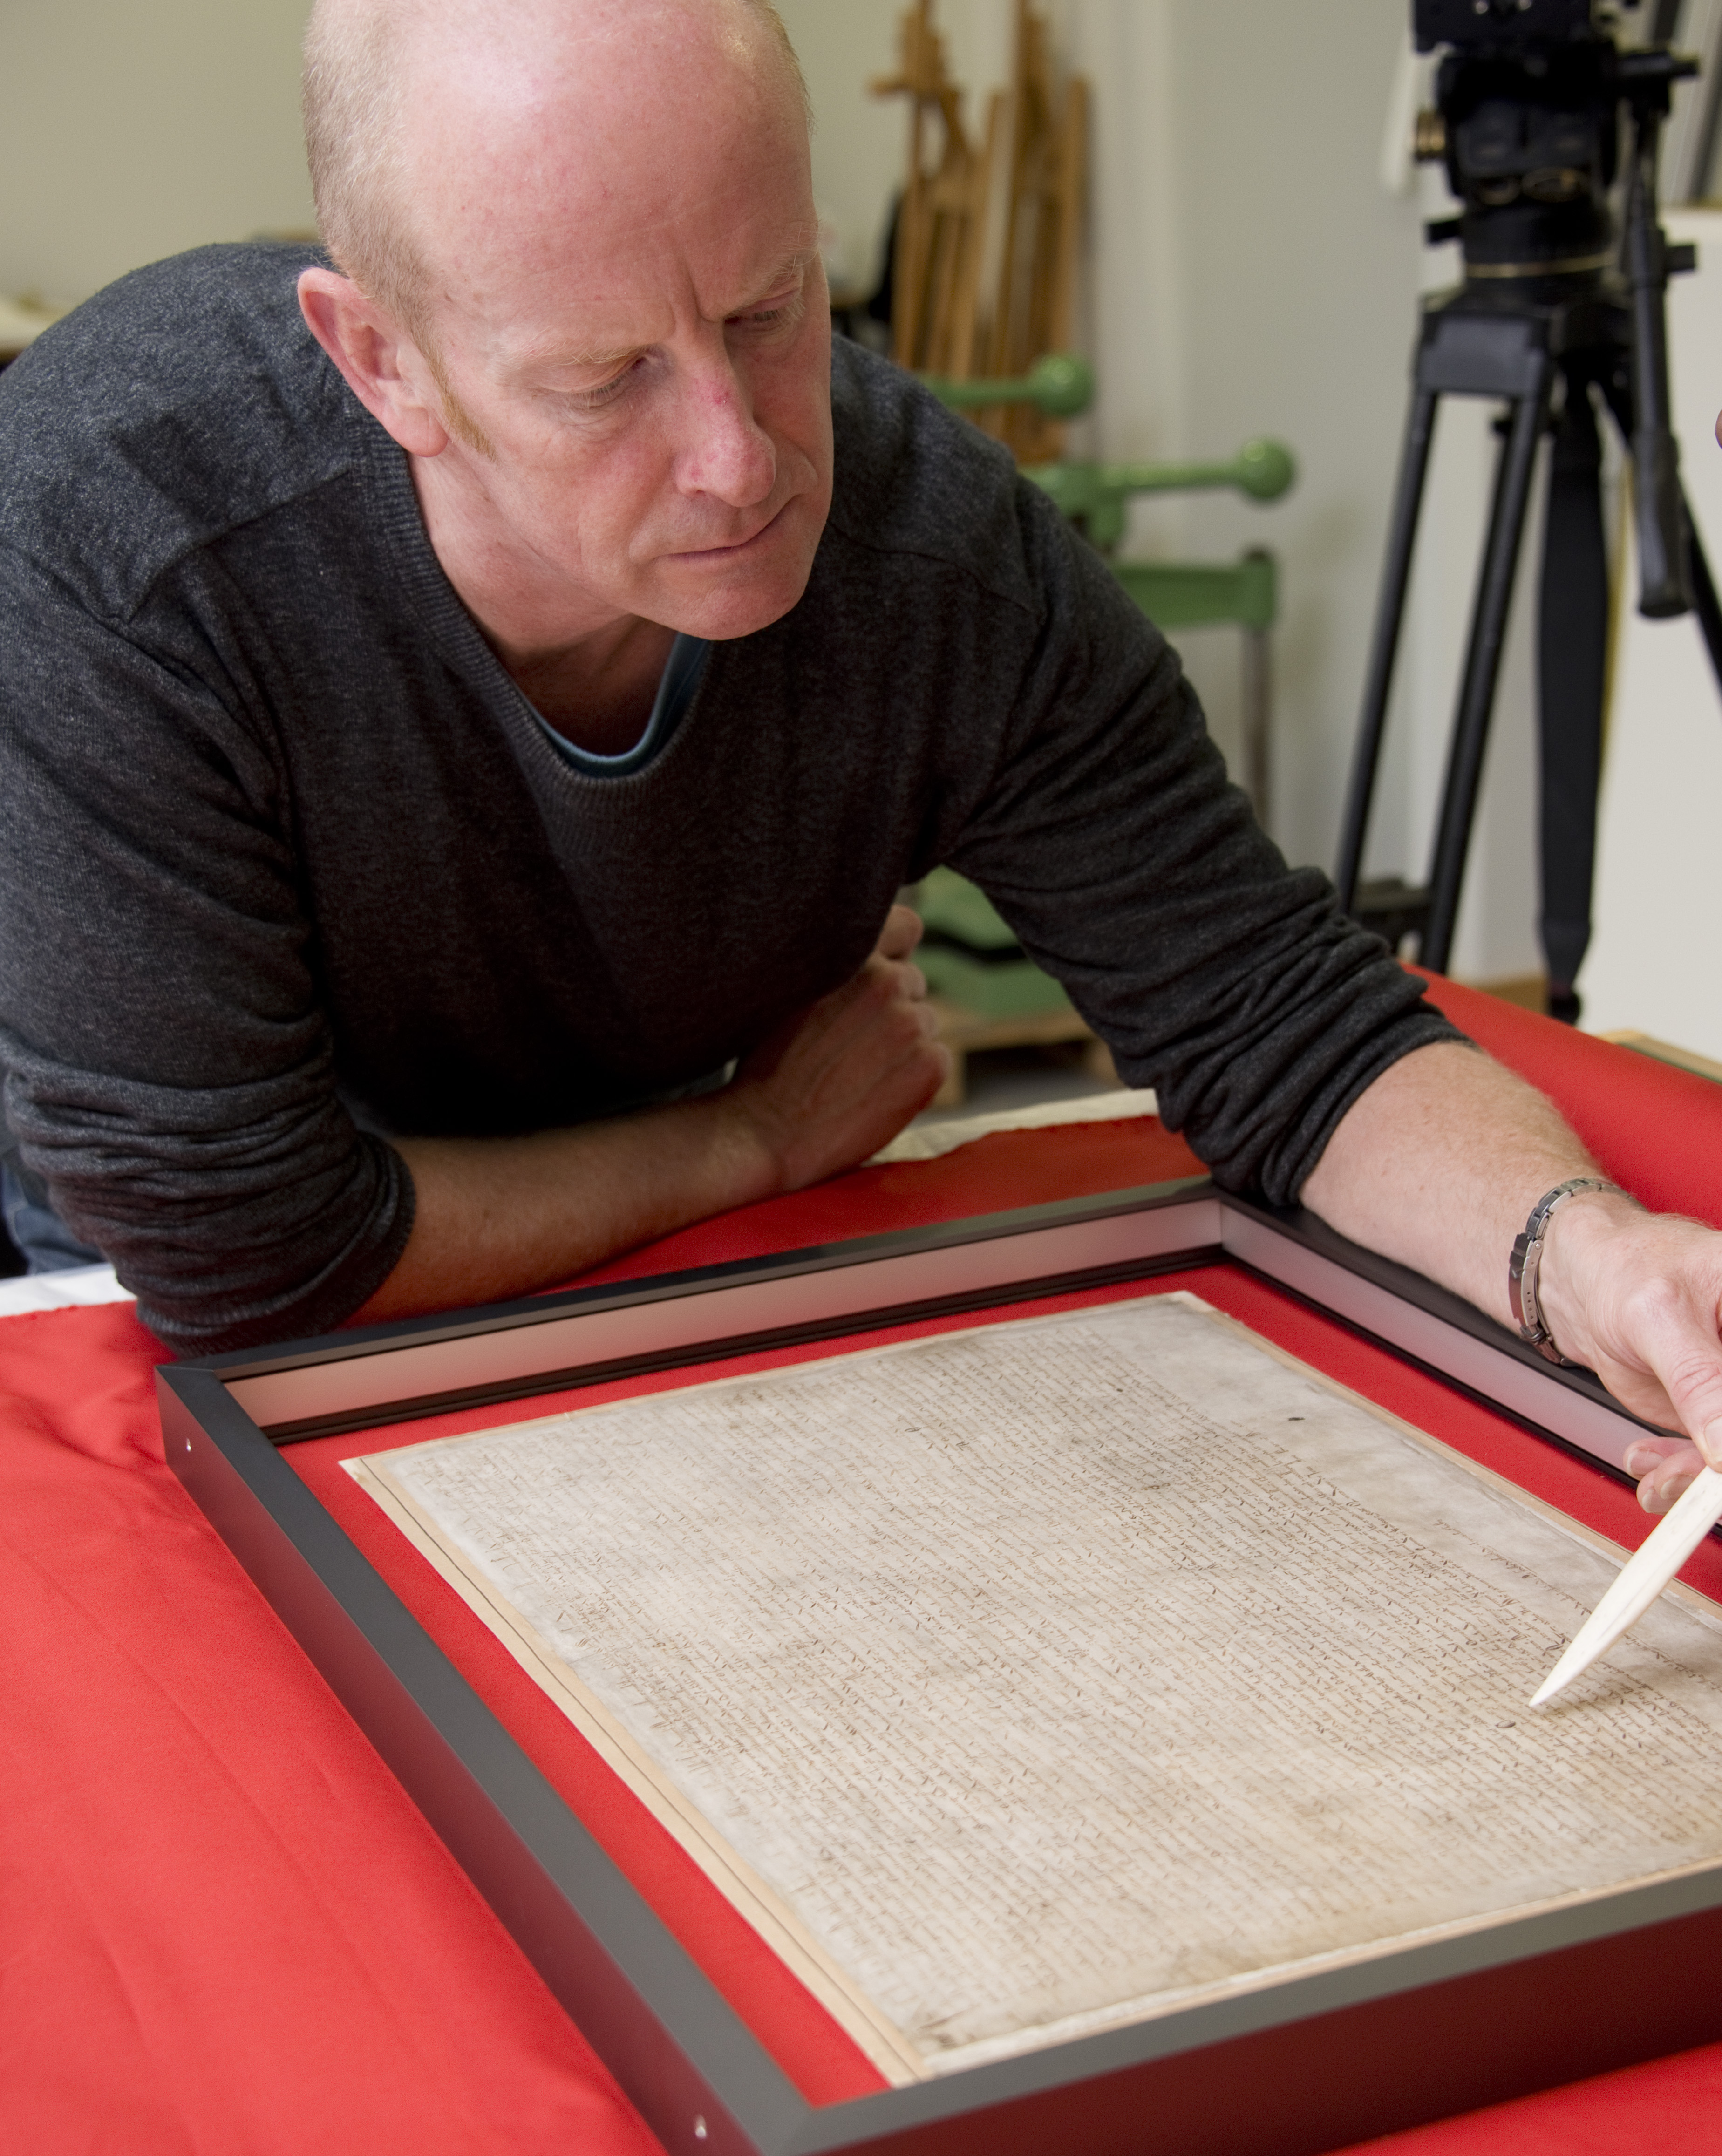 One of the British Library's Magna Carta manuscripts being prepared for anniversary display in the Library's Conservation Centre.